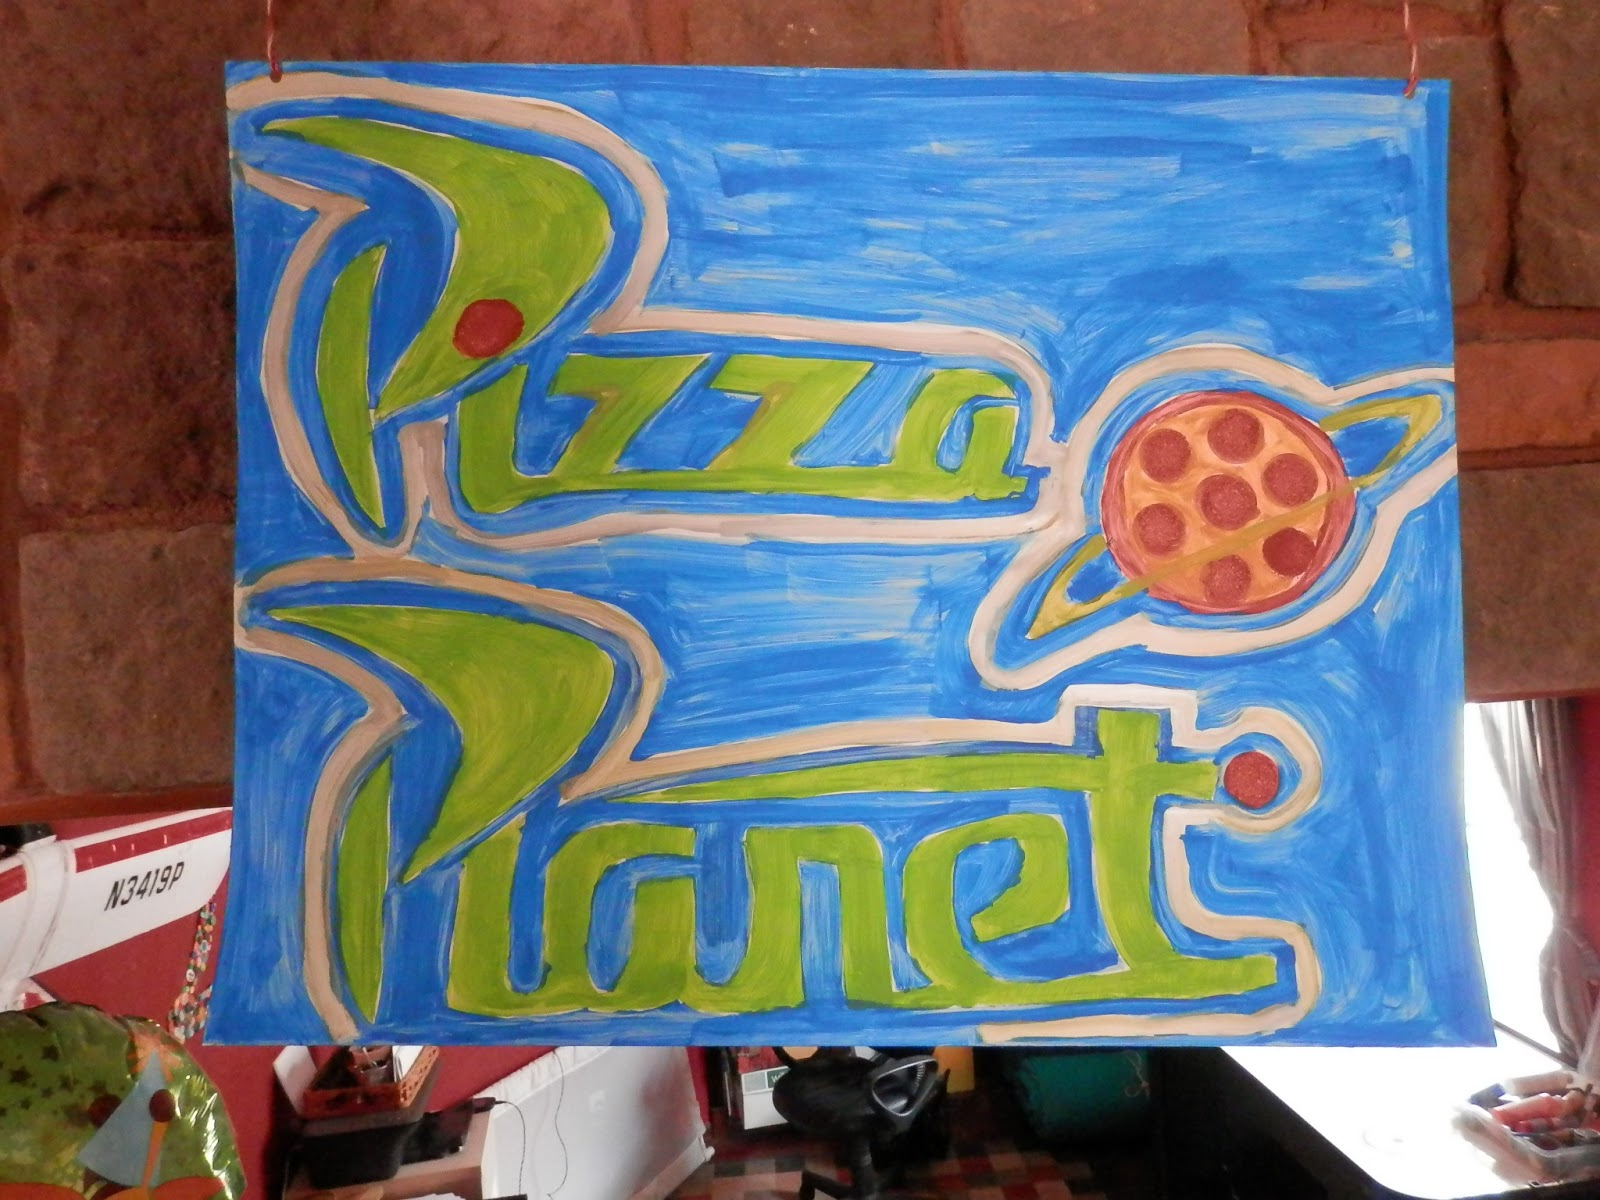 Pizza Planet Sign recreated by Monica Jamer